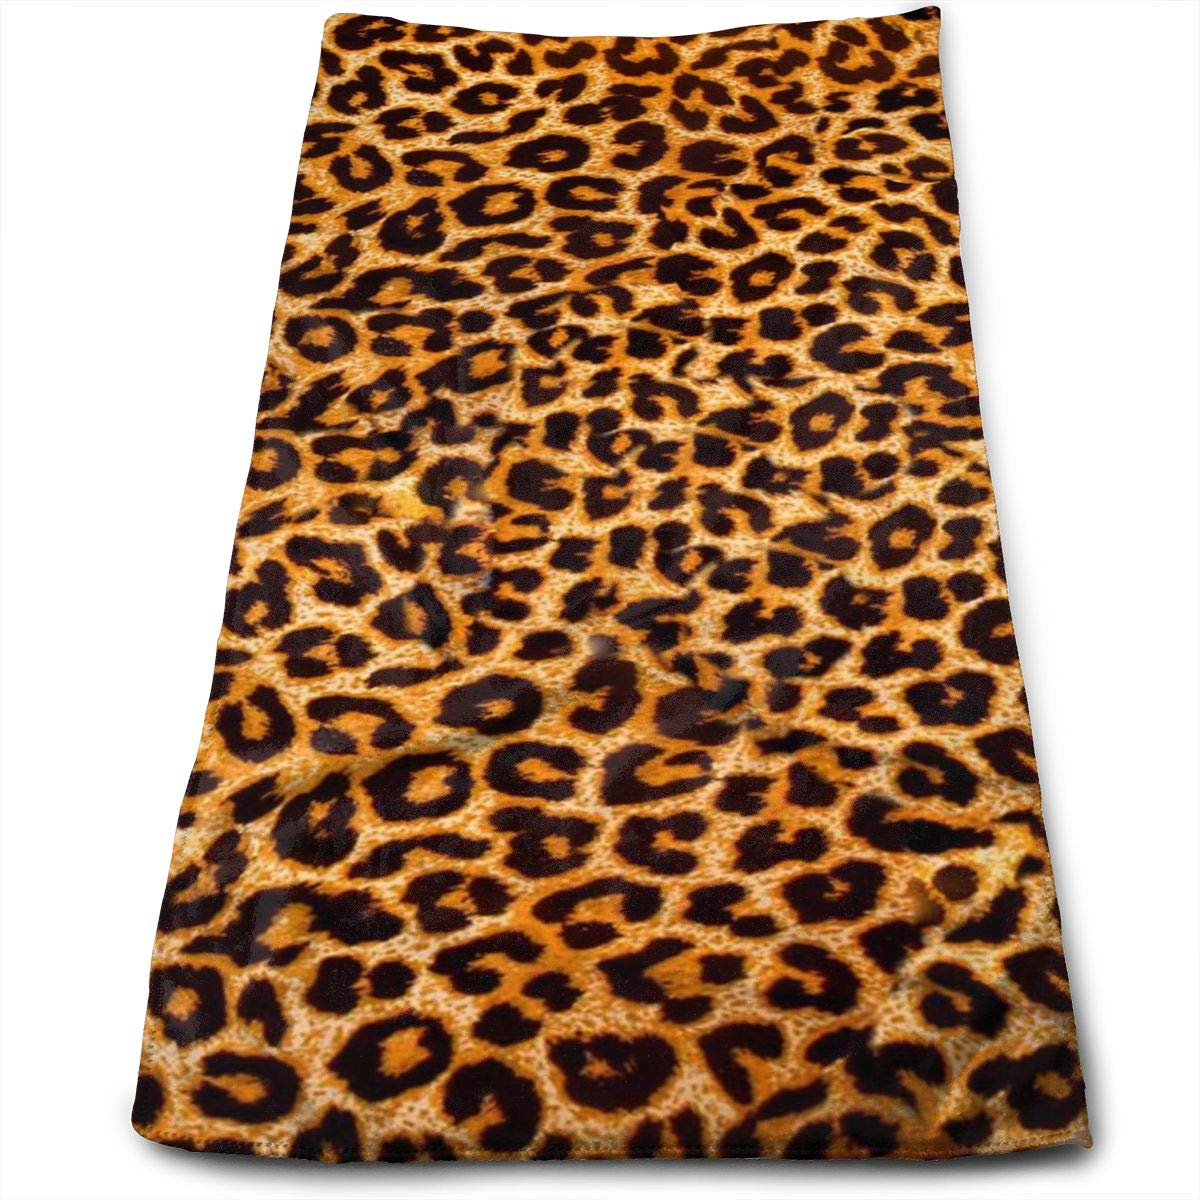 QiFfan22 Leopard Print.jpg Kitchen Towels - Dish Cloth - Machine Washable Cotton Kitchen Dishcloths,Dish Towel & Tea Towels for Drying,Cleaning,Cooking,Baking (12 X 27.5 Inch)